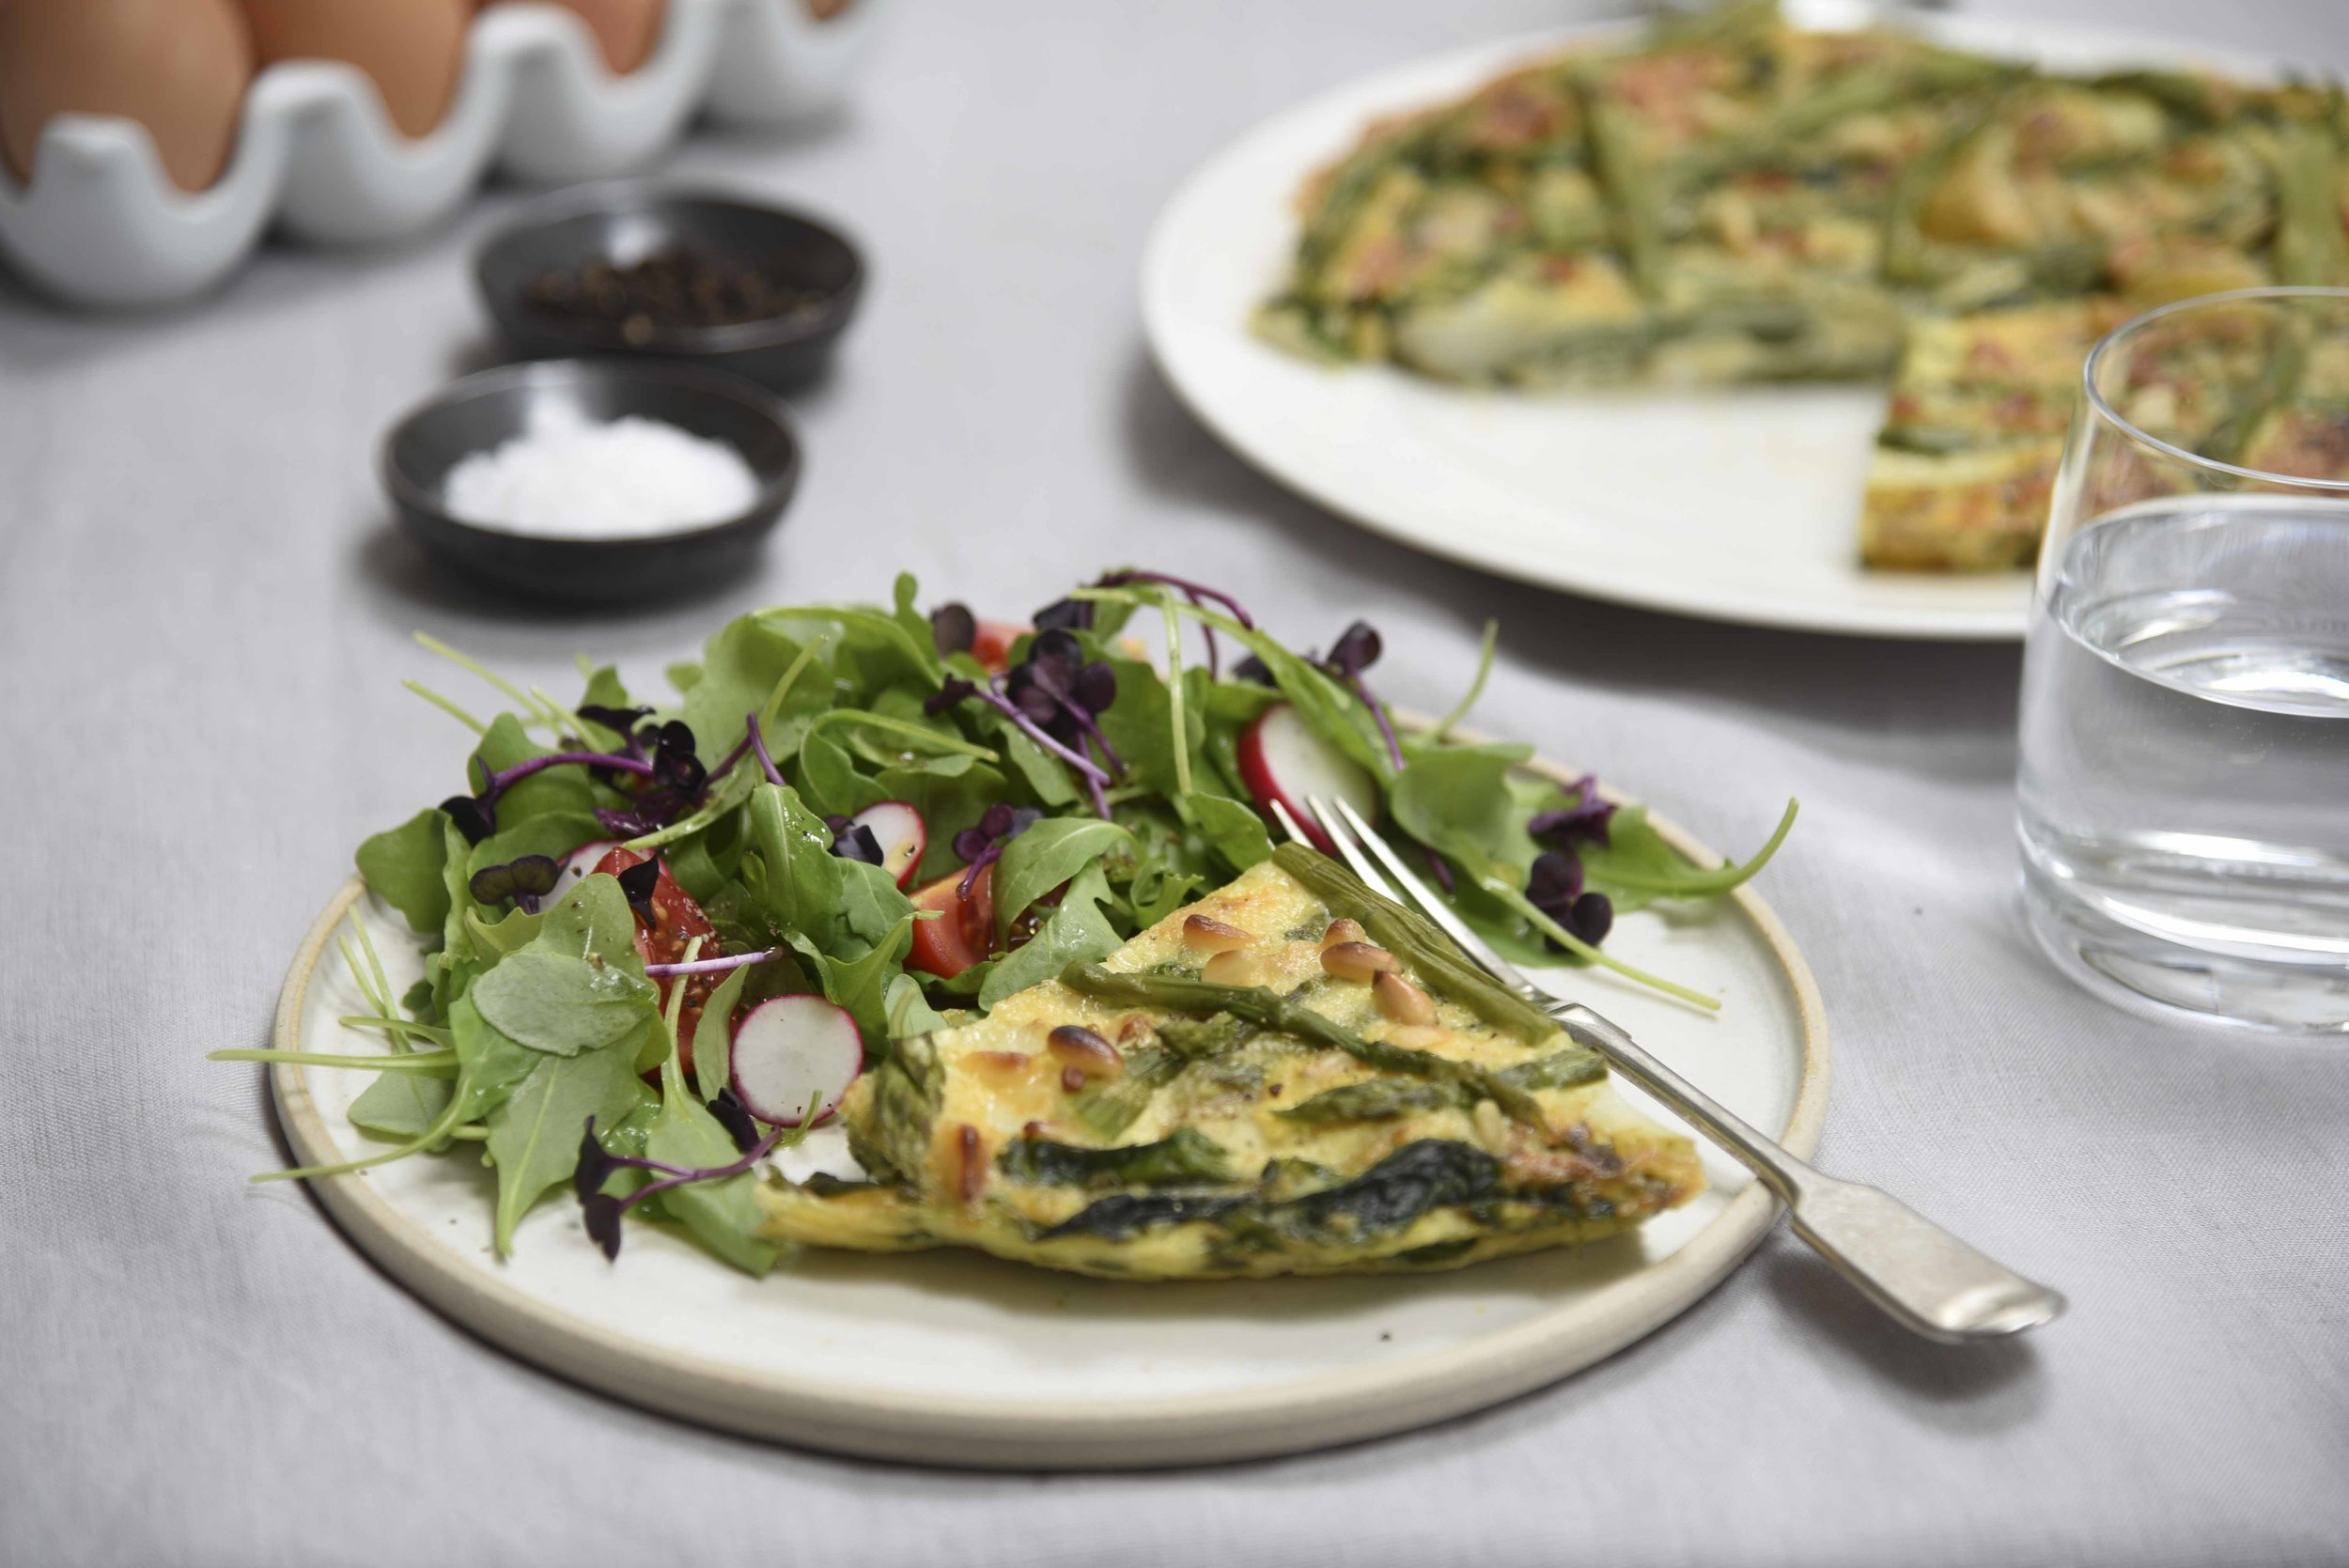 Asparagus & Spring Onion Frittata with Mixed Leaf, Radish & Tomato Salad